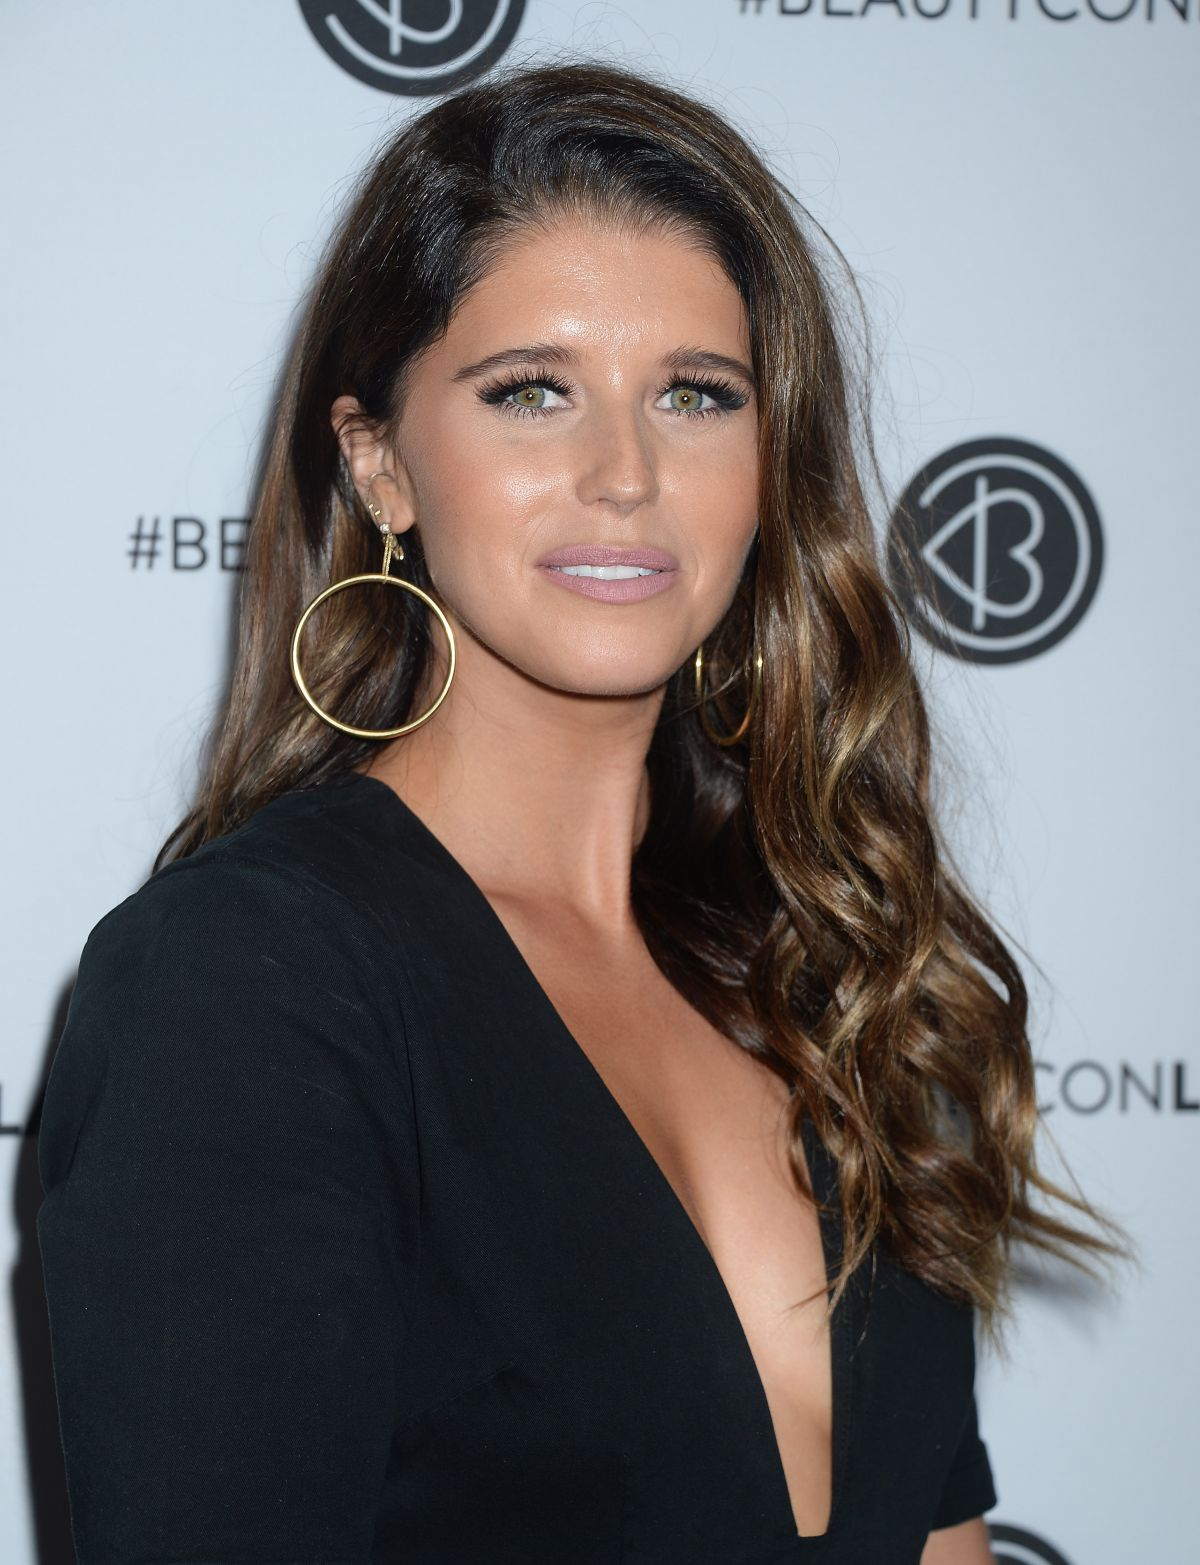 KATHERINE SCHWARZENEGGER at 5th Annual Beautycon Festival in Los Angeles 08/12/2017